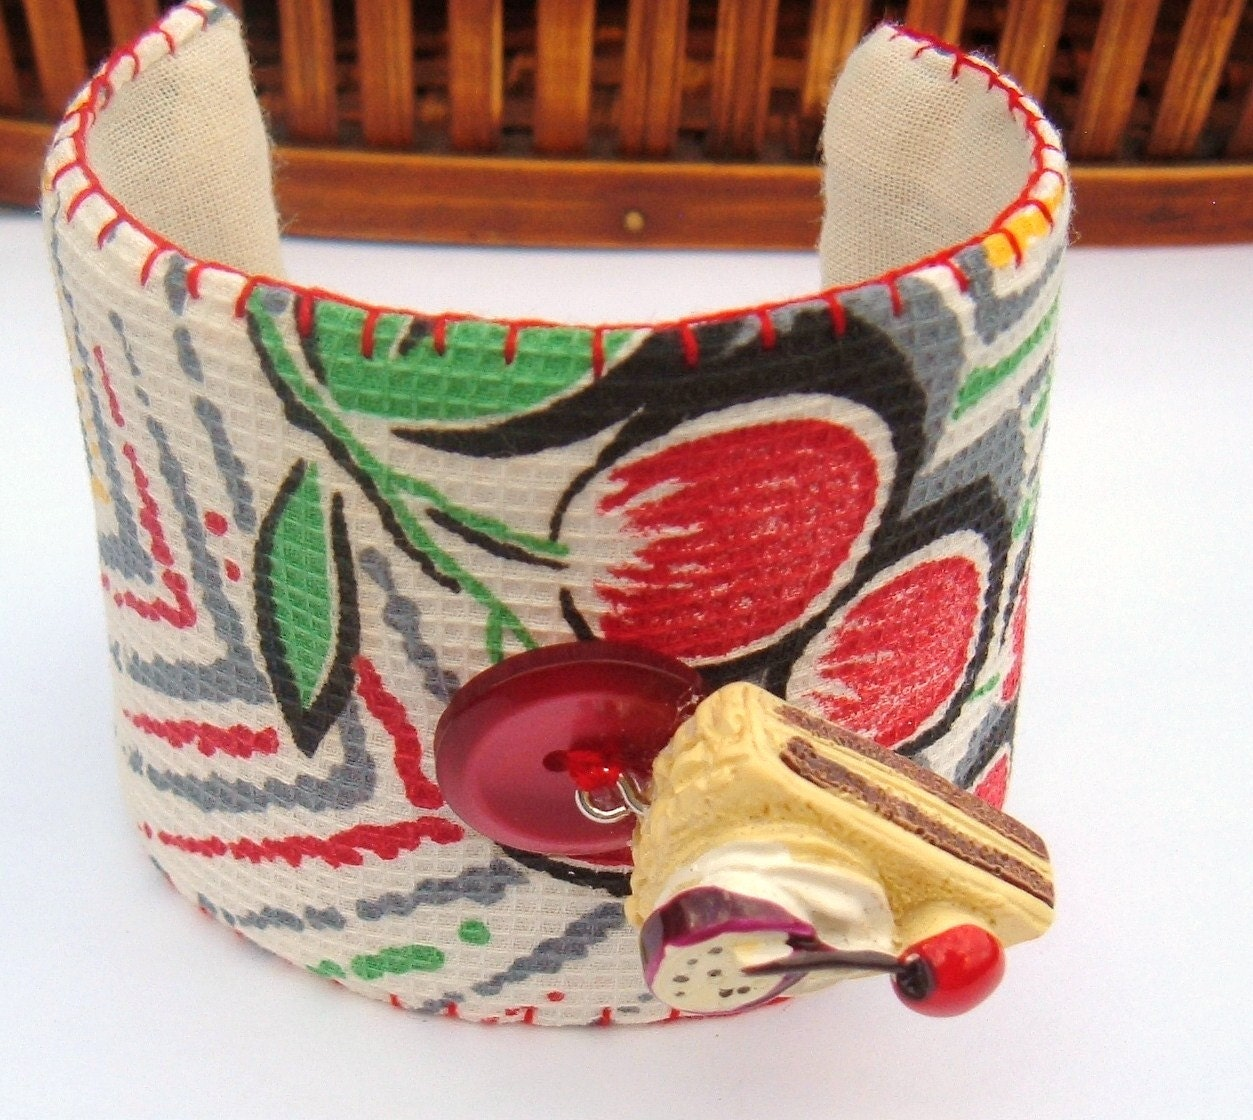 Red Grapes and Cherry Pie Fabric cuff Bracelet vintage recycle